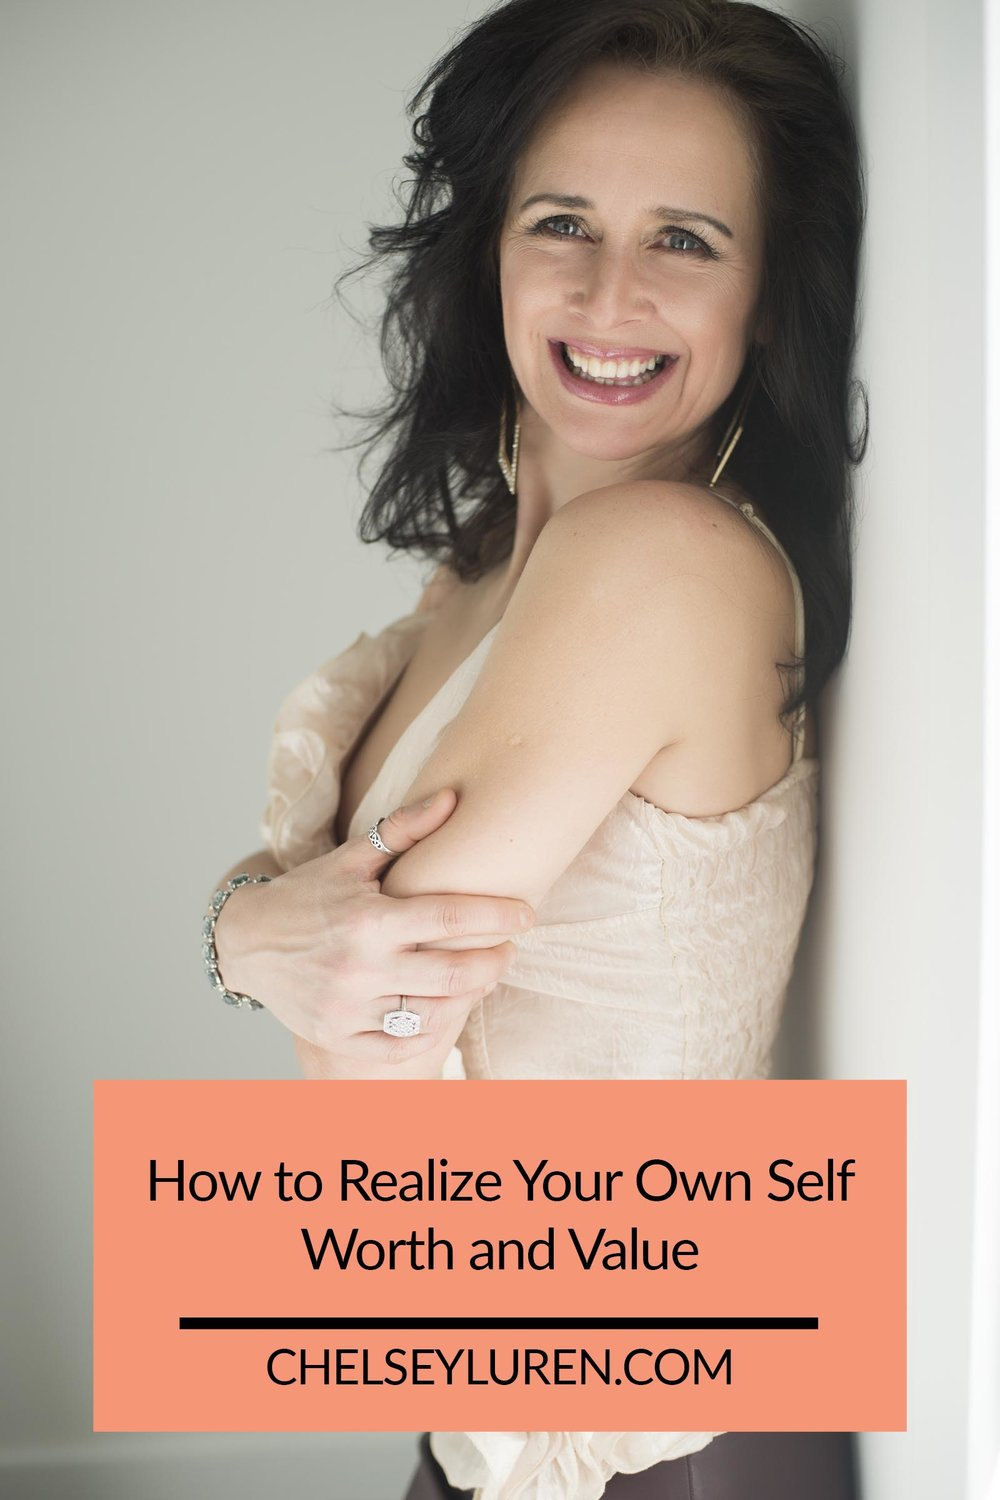 Chelsey Luren Portraits - How to Realize Your Own Self Worth and Value.jpg